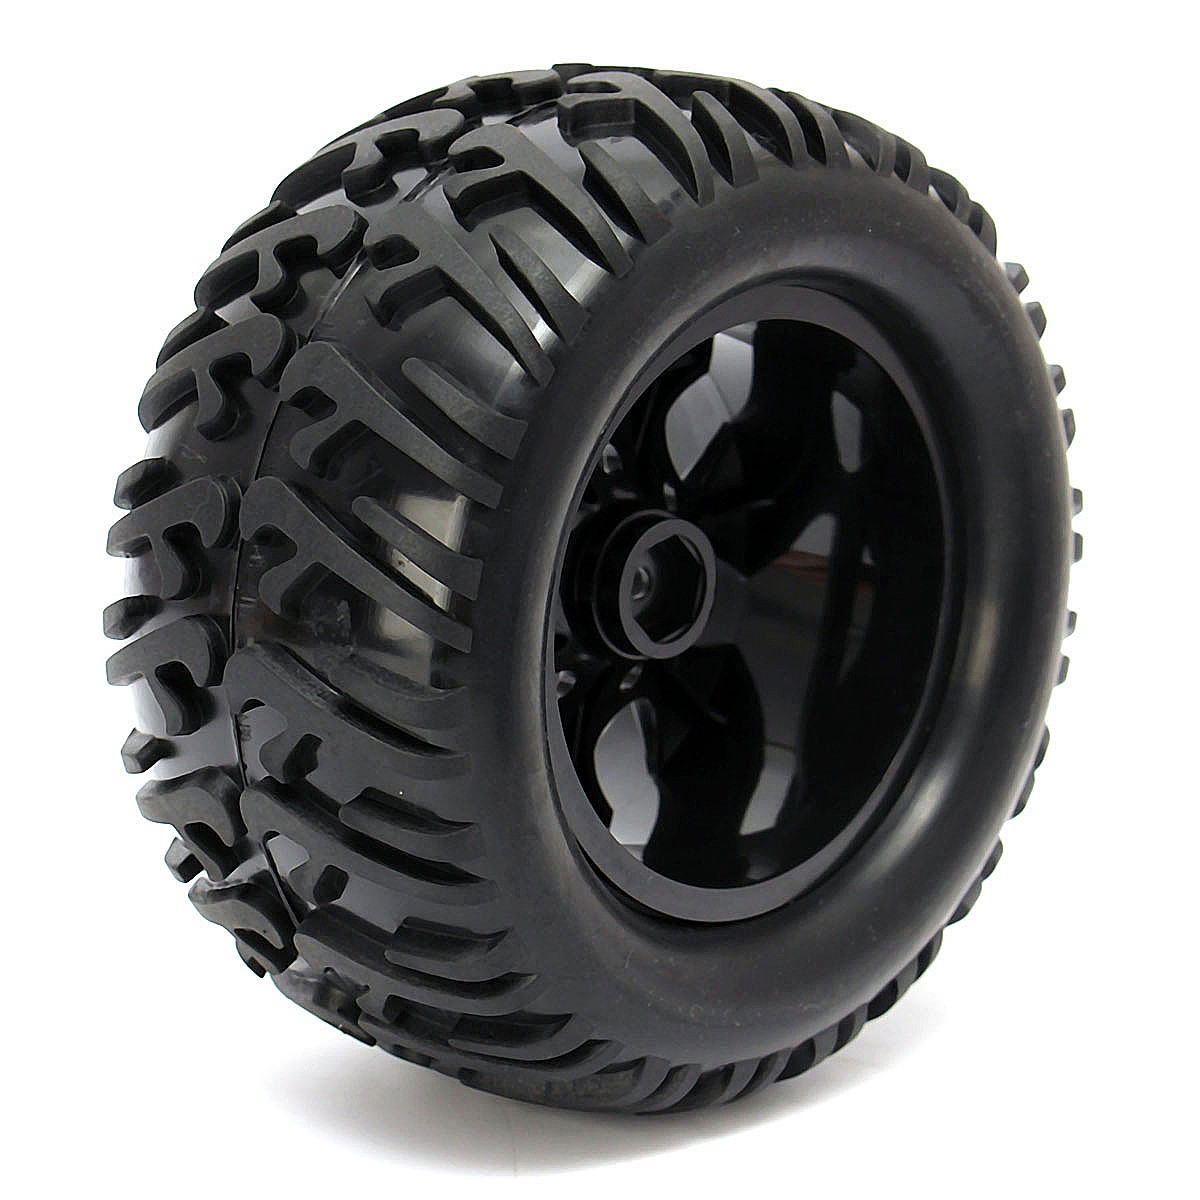 4PCS 12mm Racing Wheel Rim & Tires Redcat HSP 1:10 Monster truck RC On-Road Car Parts 12mm Hub 88005 Toys Accesseries дезодорирующий фильтр для очистителя воздуха panasonic f zxfd70z